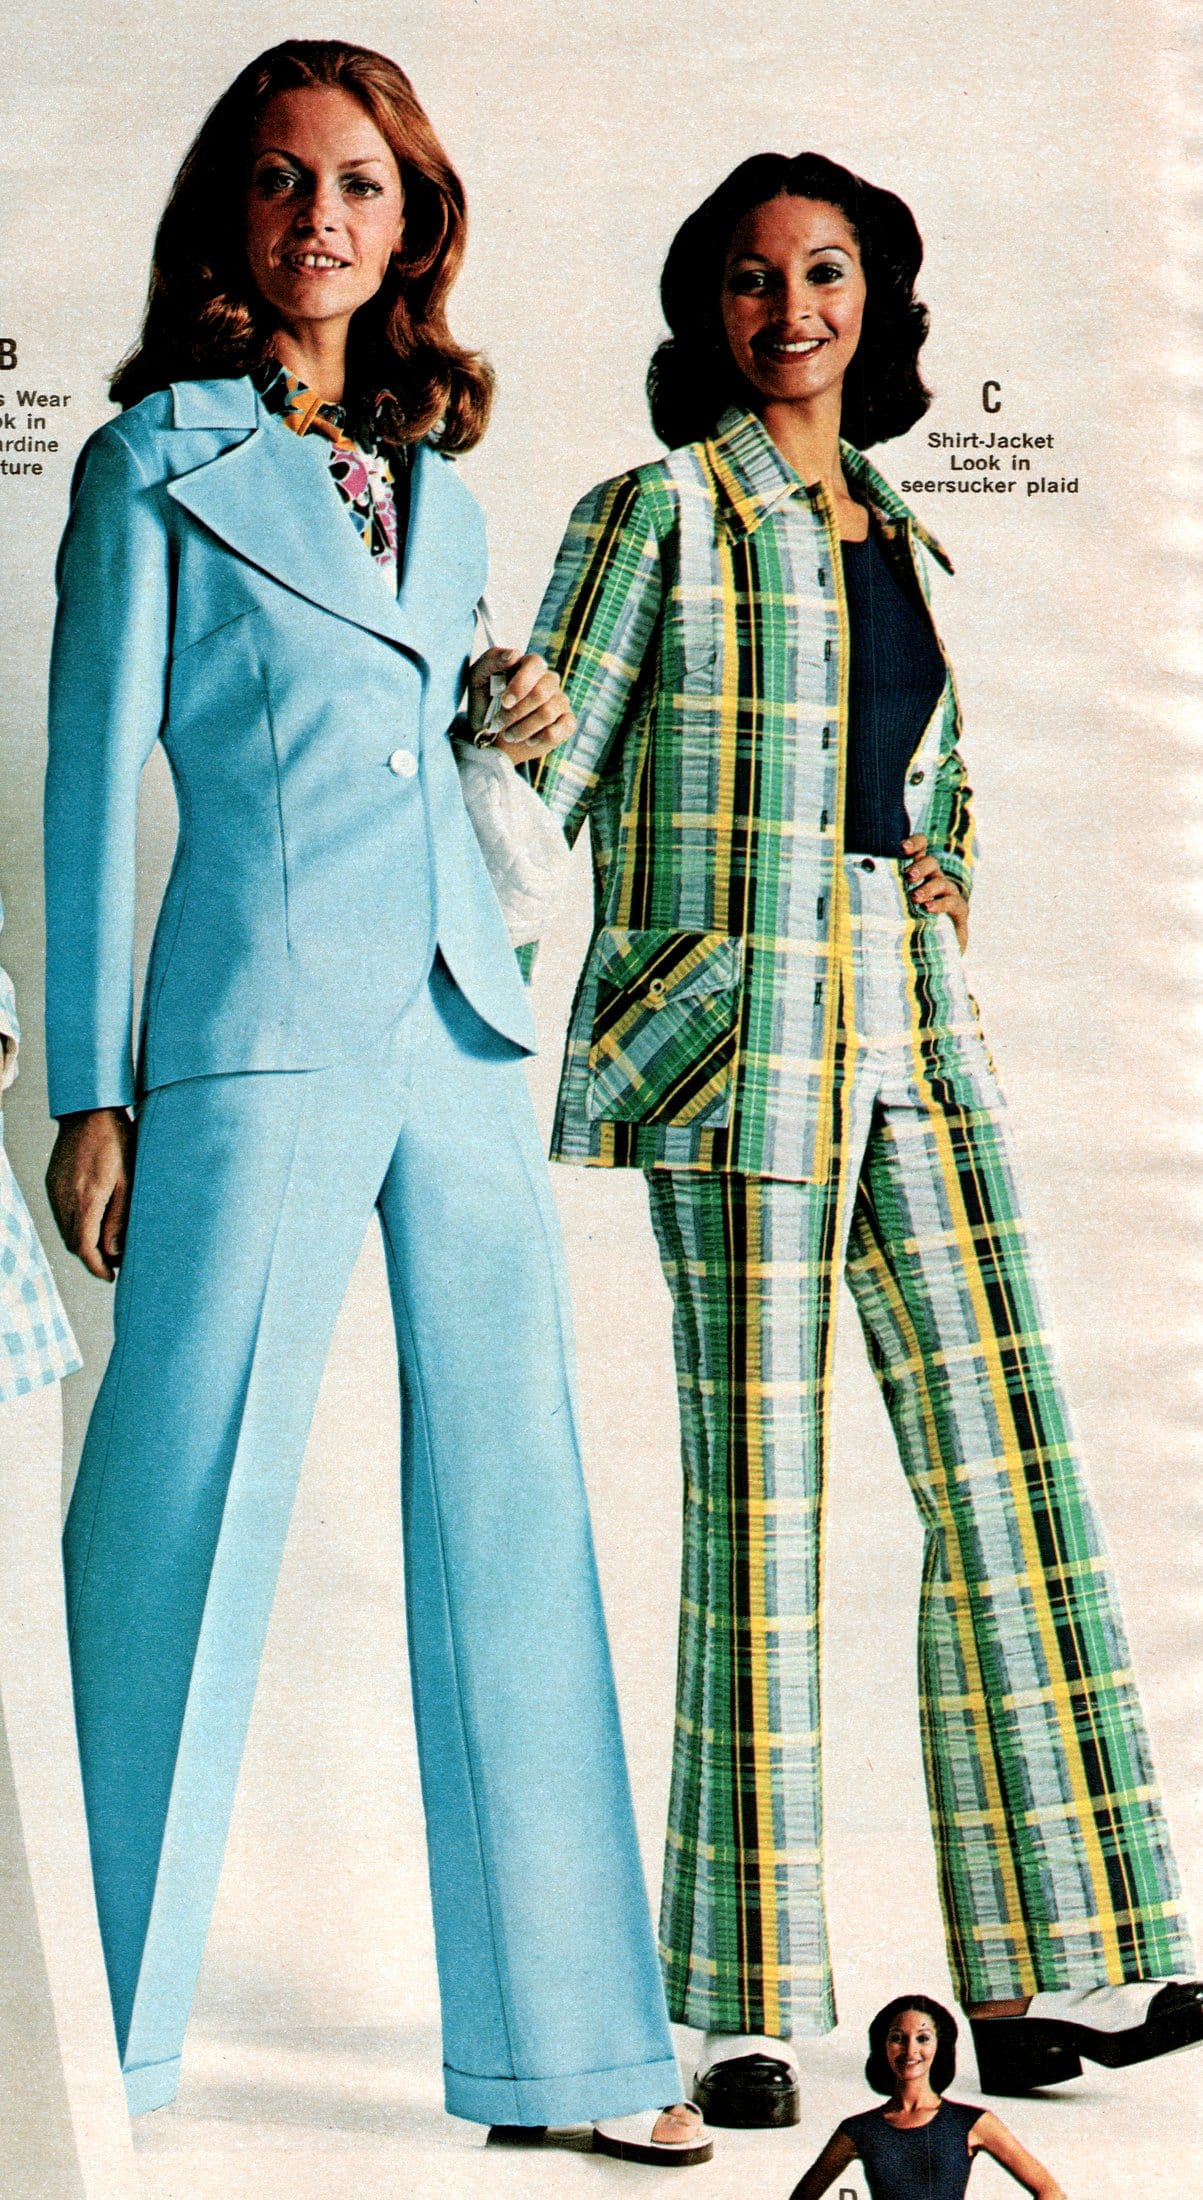 Vintage fashion Casual suits for women (1973)